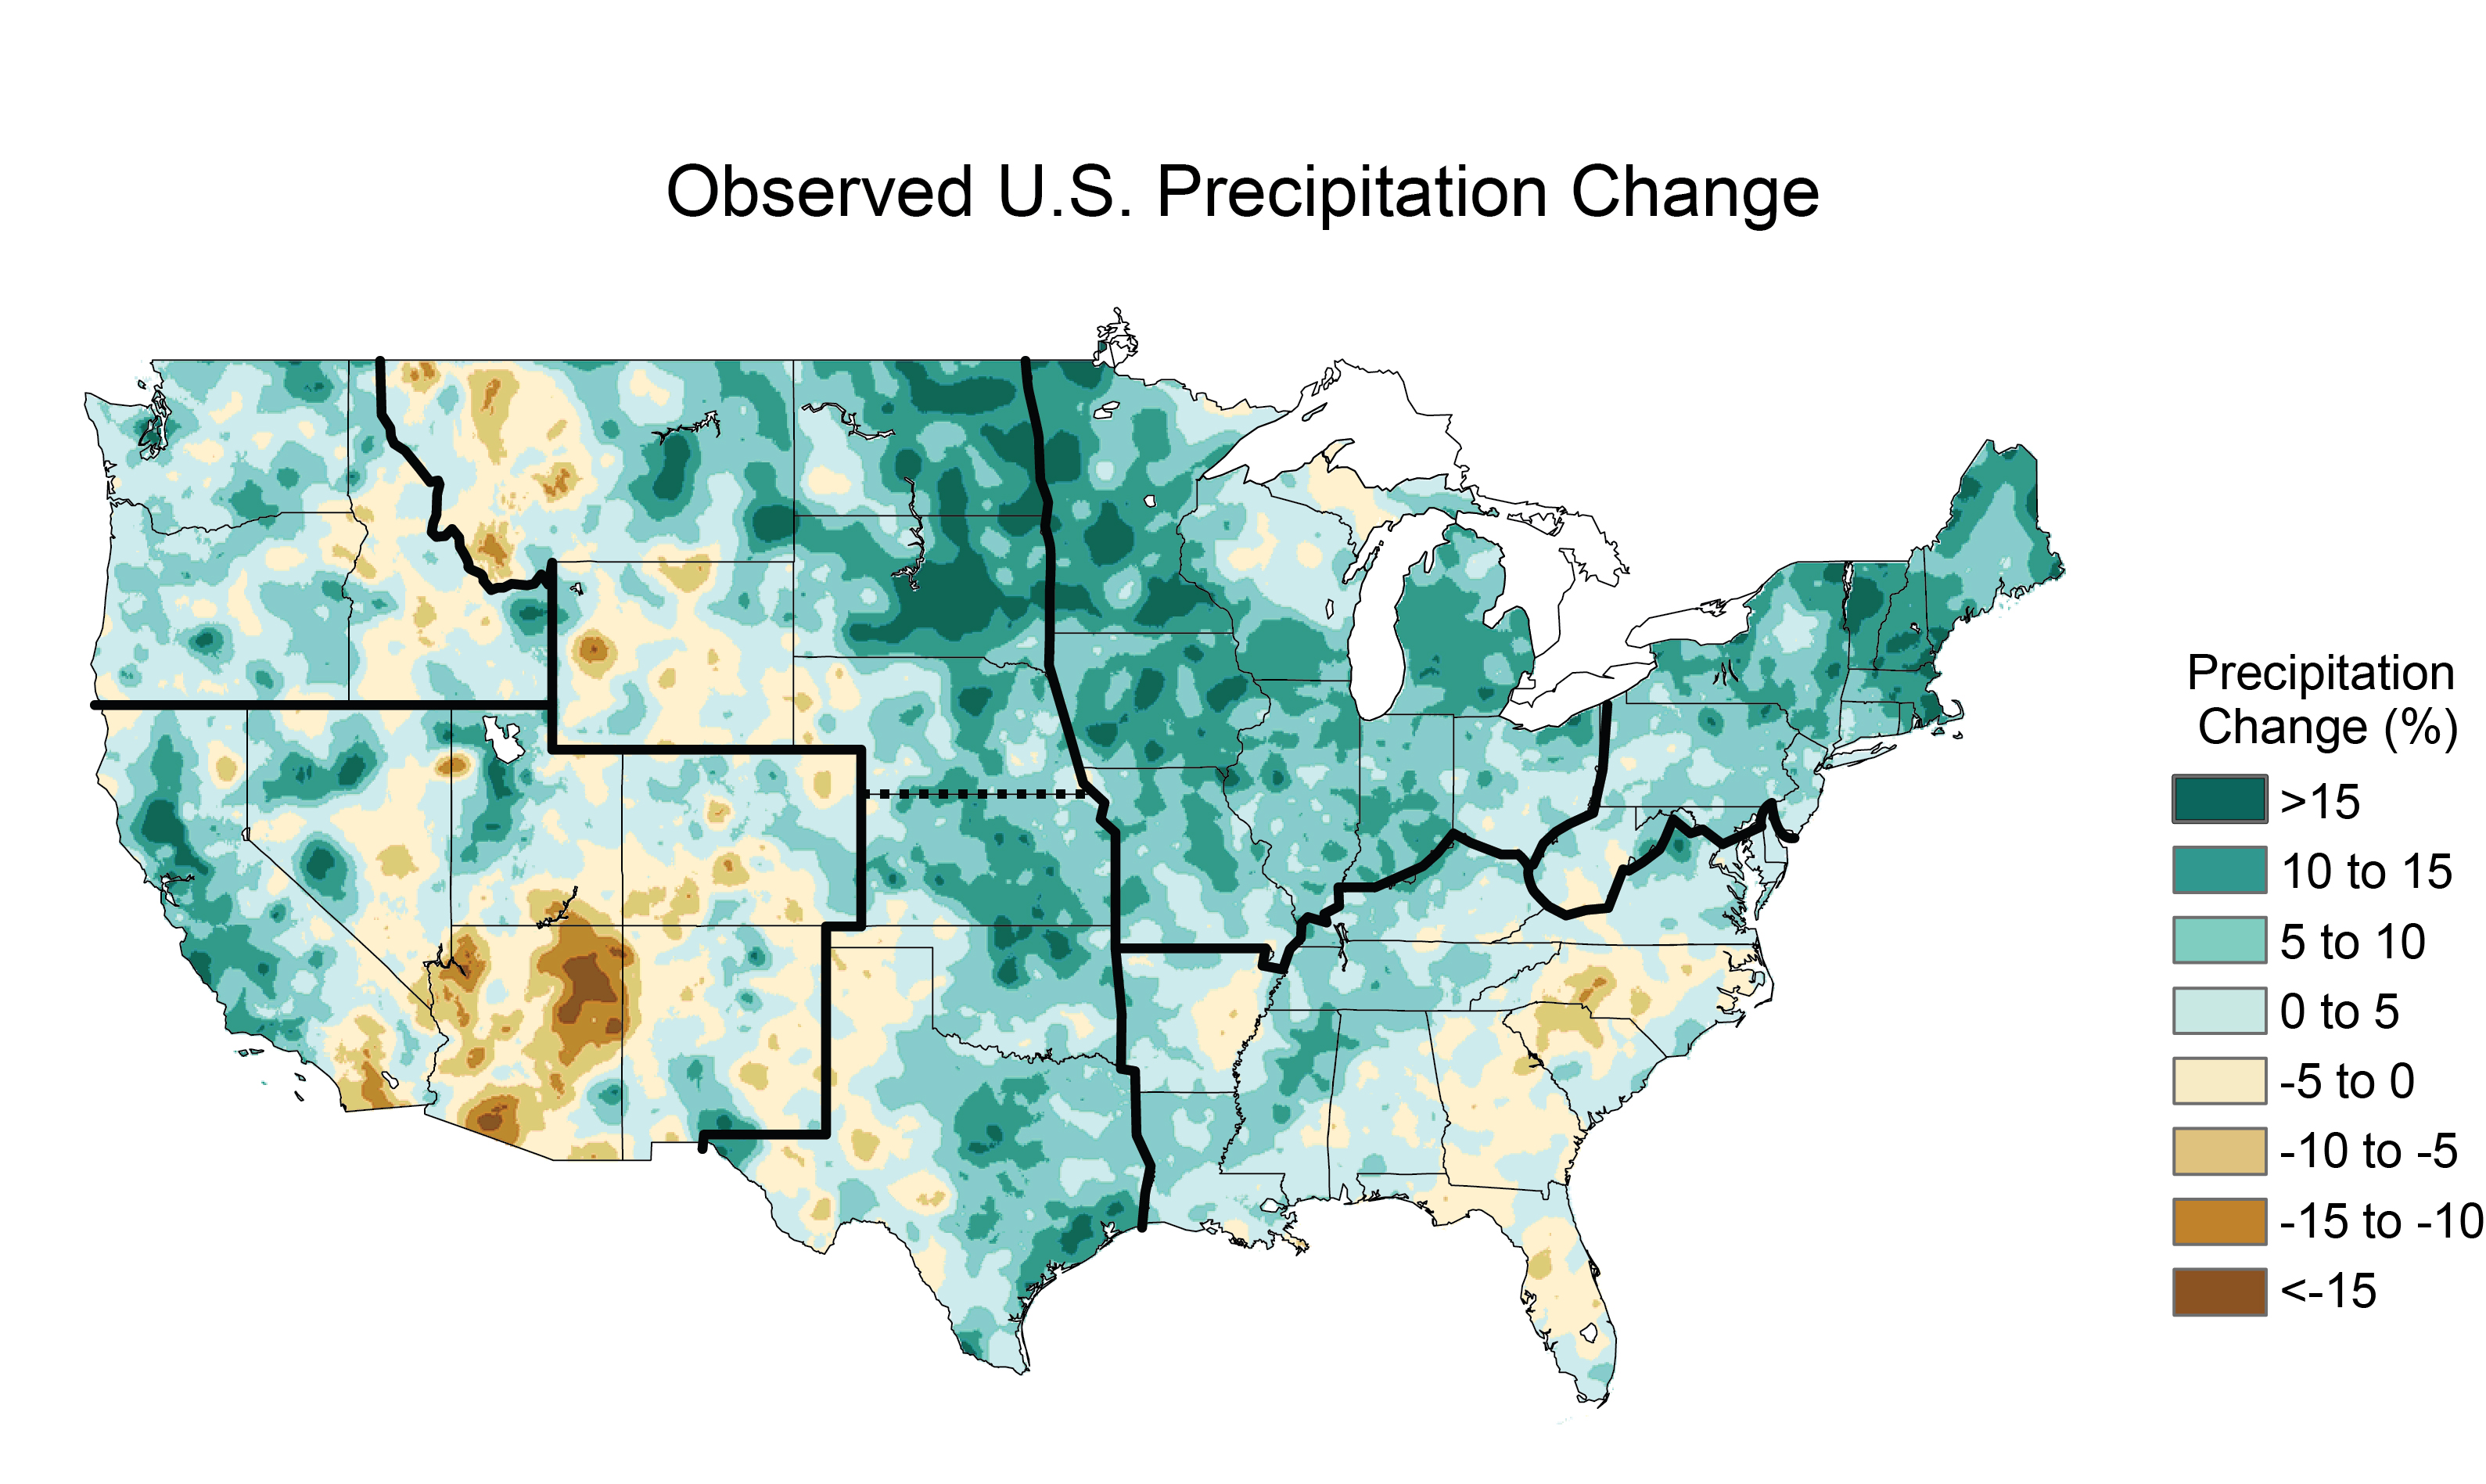 Climate Changes In The United States Image Of The Day Climate Change Map Us